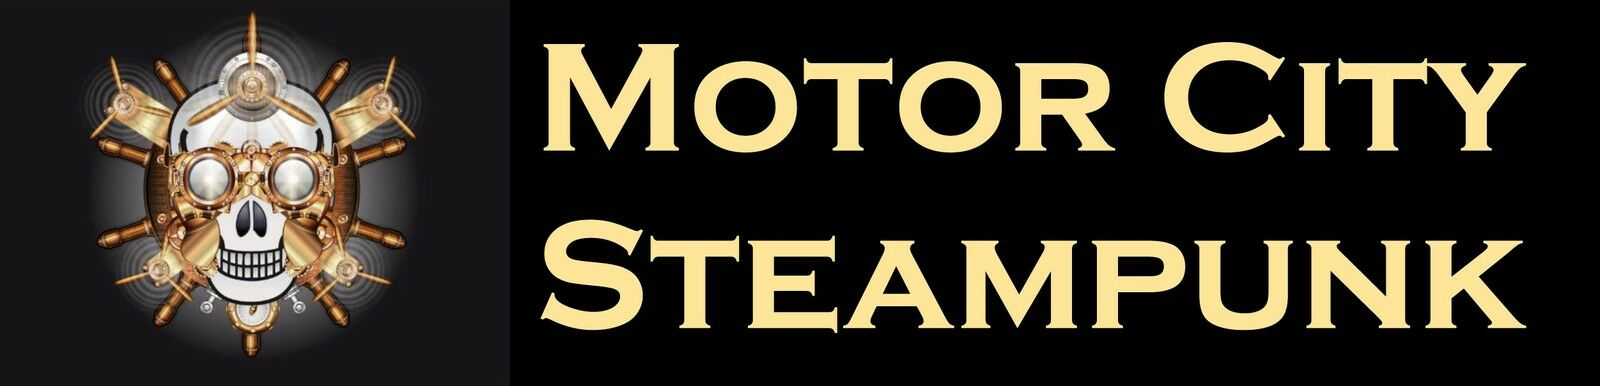 Motor City Steampunk